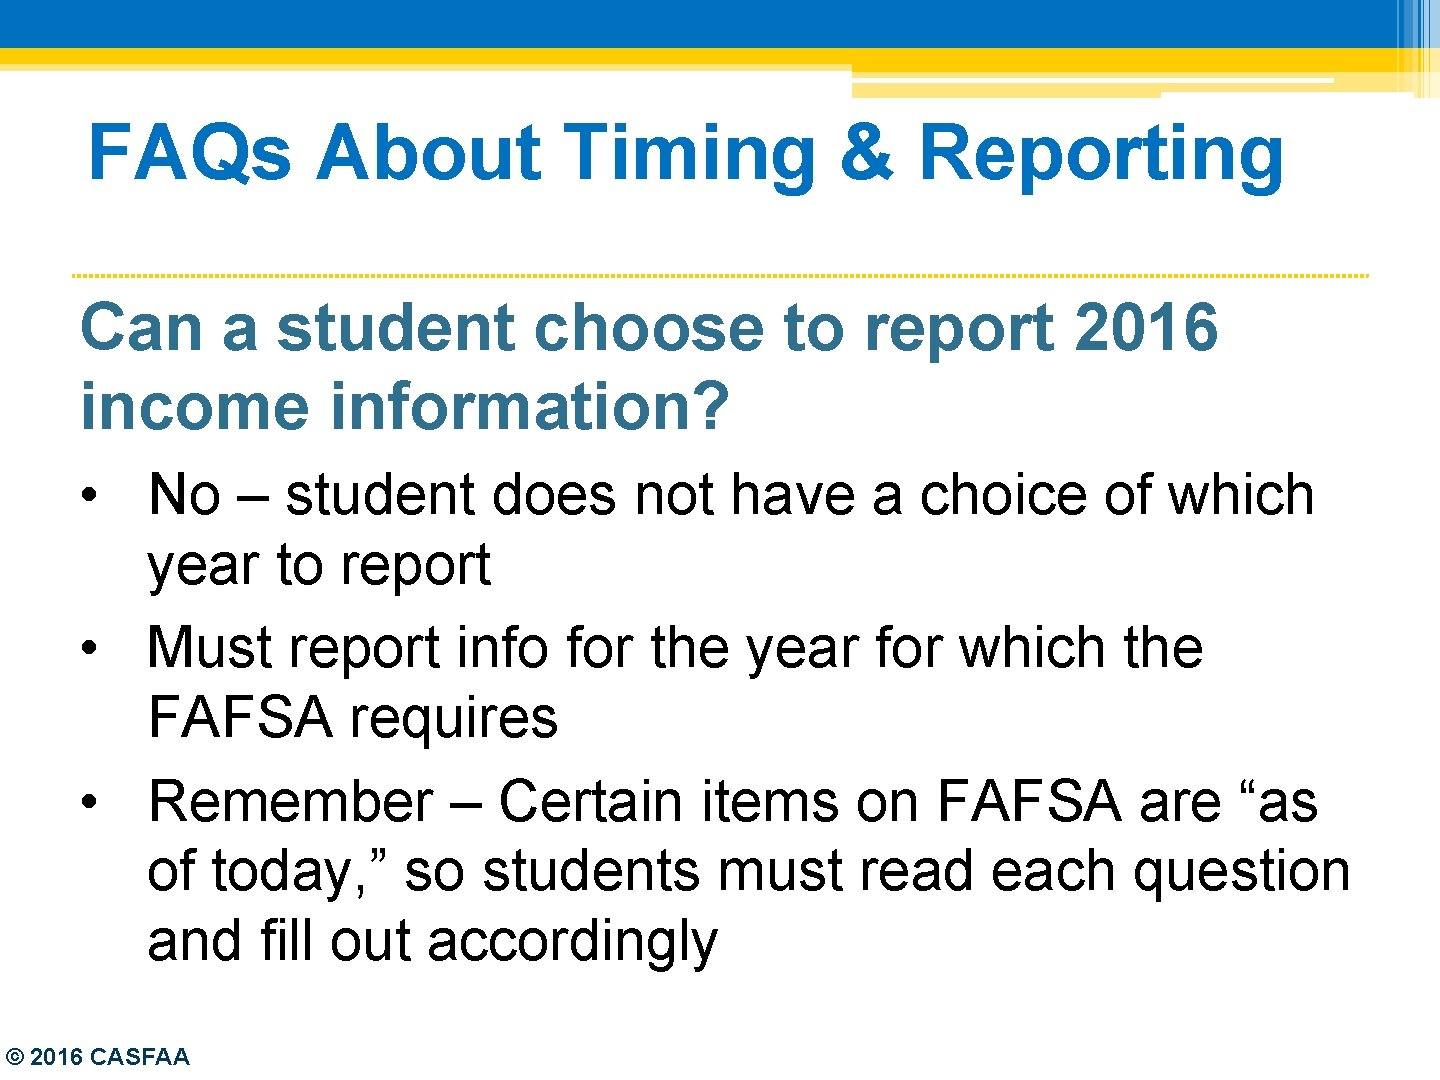 FAQs About Timing & Reporting Can a student choose to report 2016 income information?